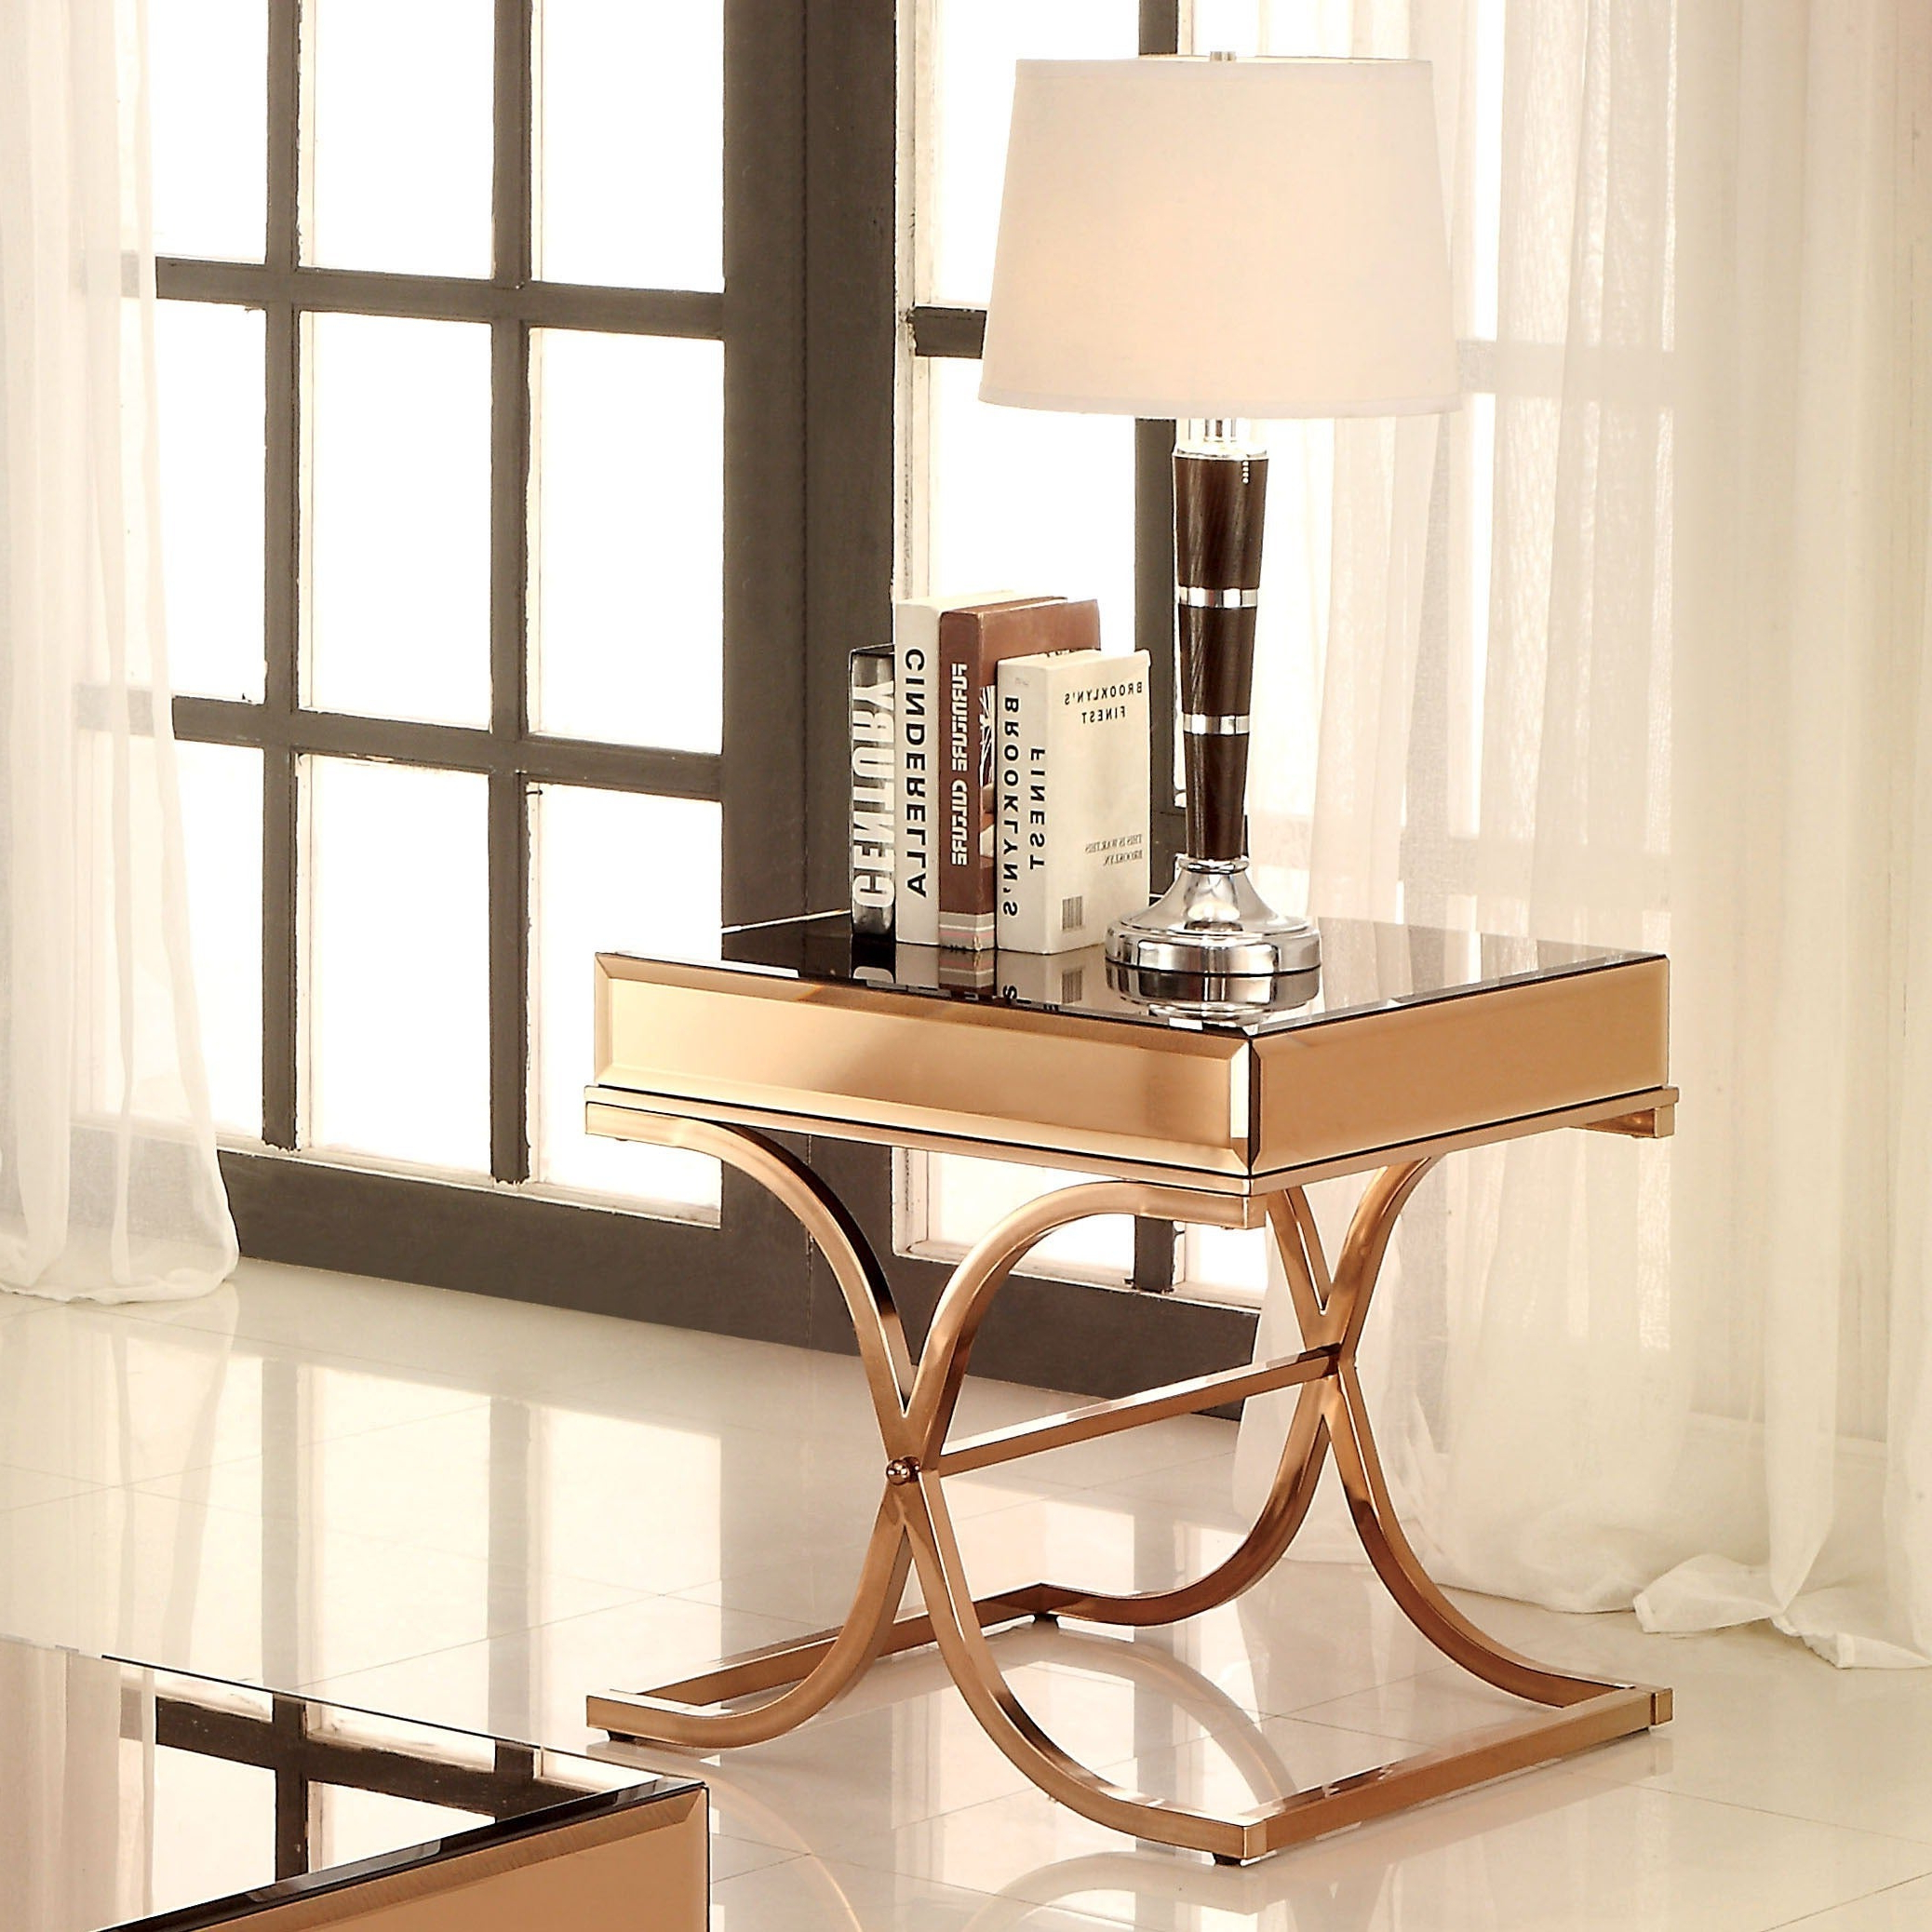 Furniture Of America Orelia Luxury Copper Metal End Table With Most Popular Furniture Of America Orelia Brass Luxury Copper Metal Coffee Tables (View 11 of 20)